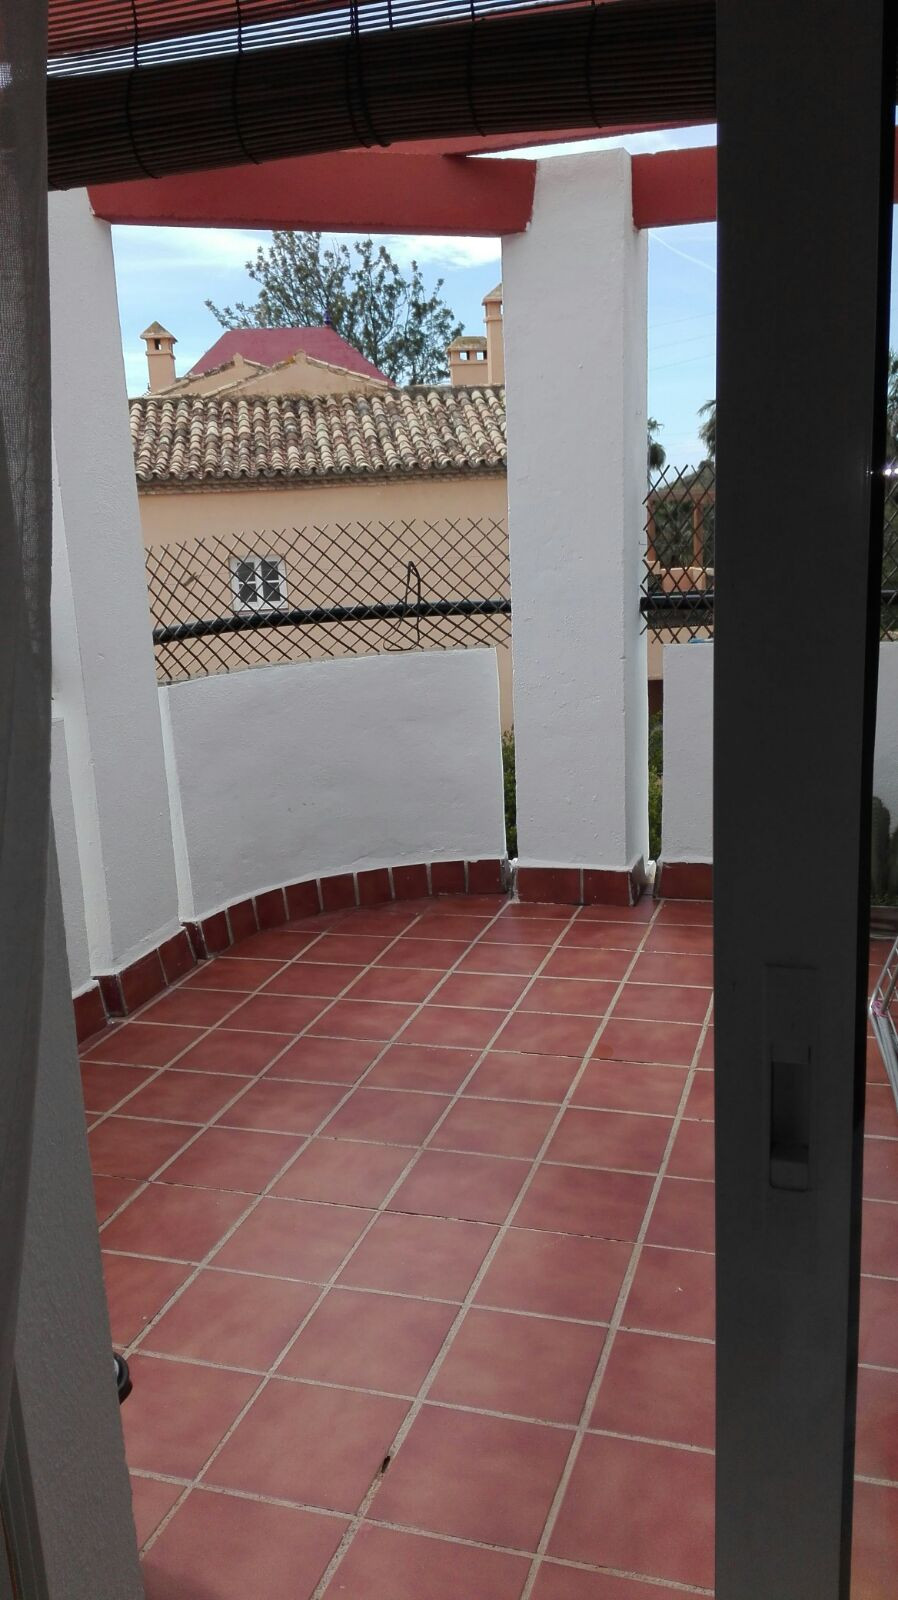 Beautiful penthouse in Riviera, mijas coast / fuengirola with enclosure, terrace and balcony, 2 bedr, Spain